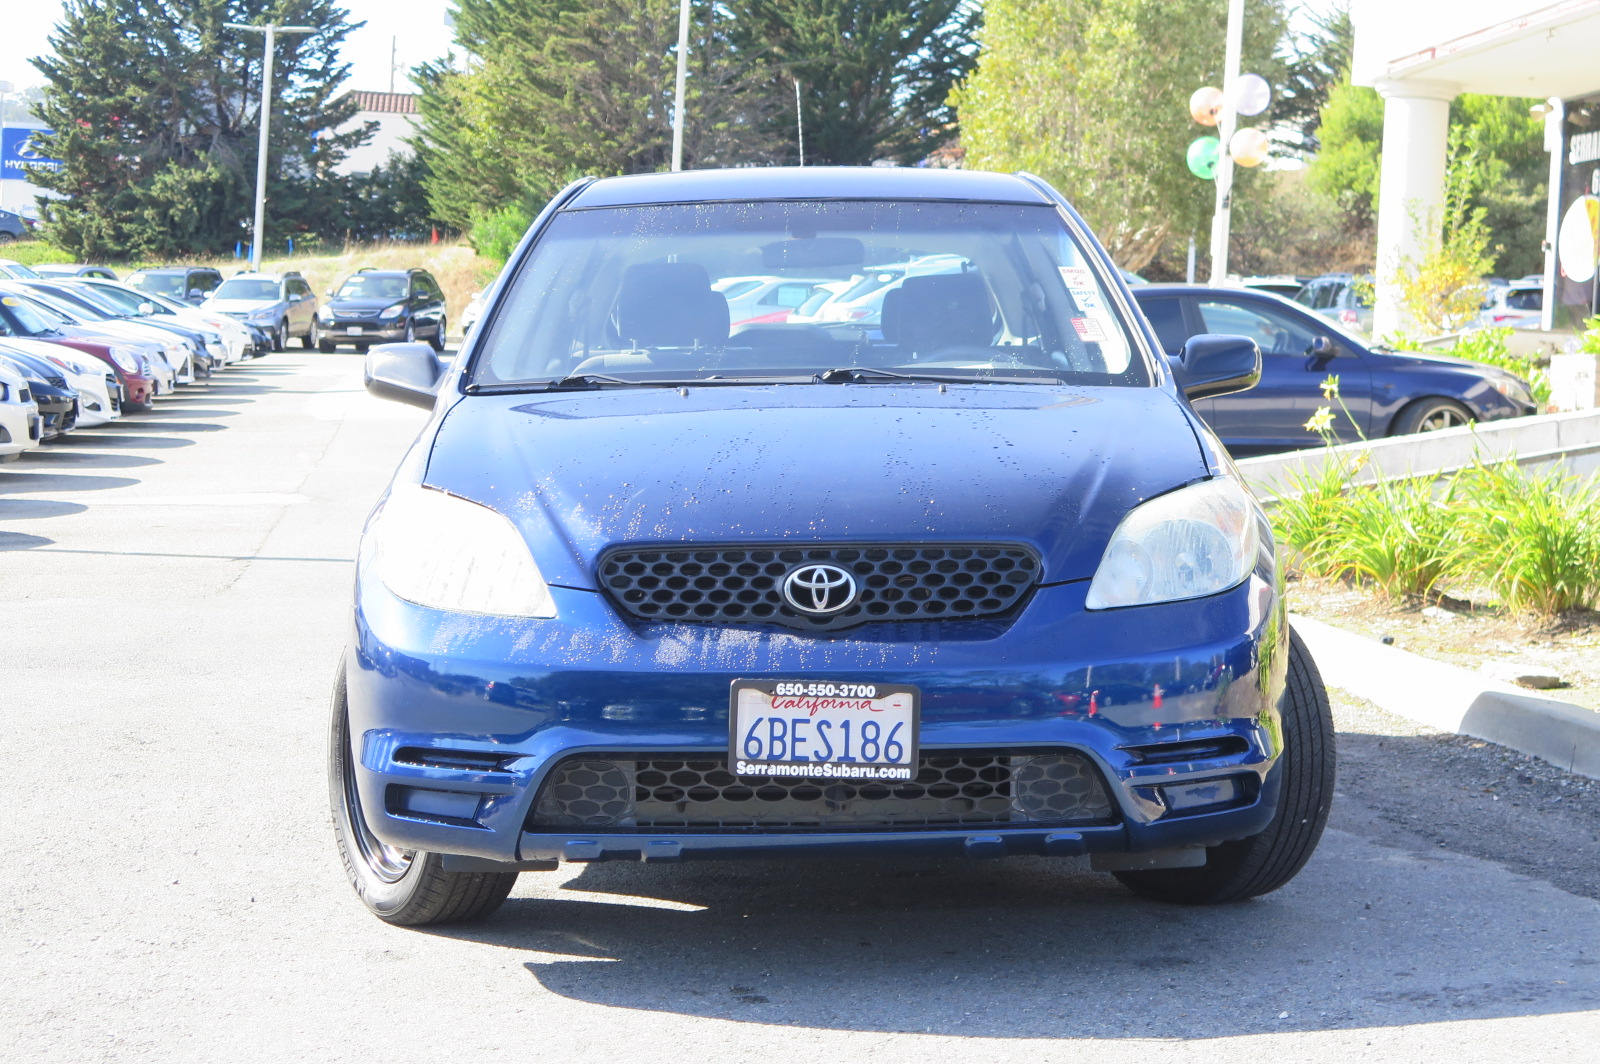 2004 TOYOTA MATRIX SPORT WAGON blue 4-cyl 18 liter automatic check out our 1 owner 2004 matrix